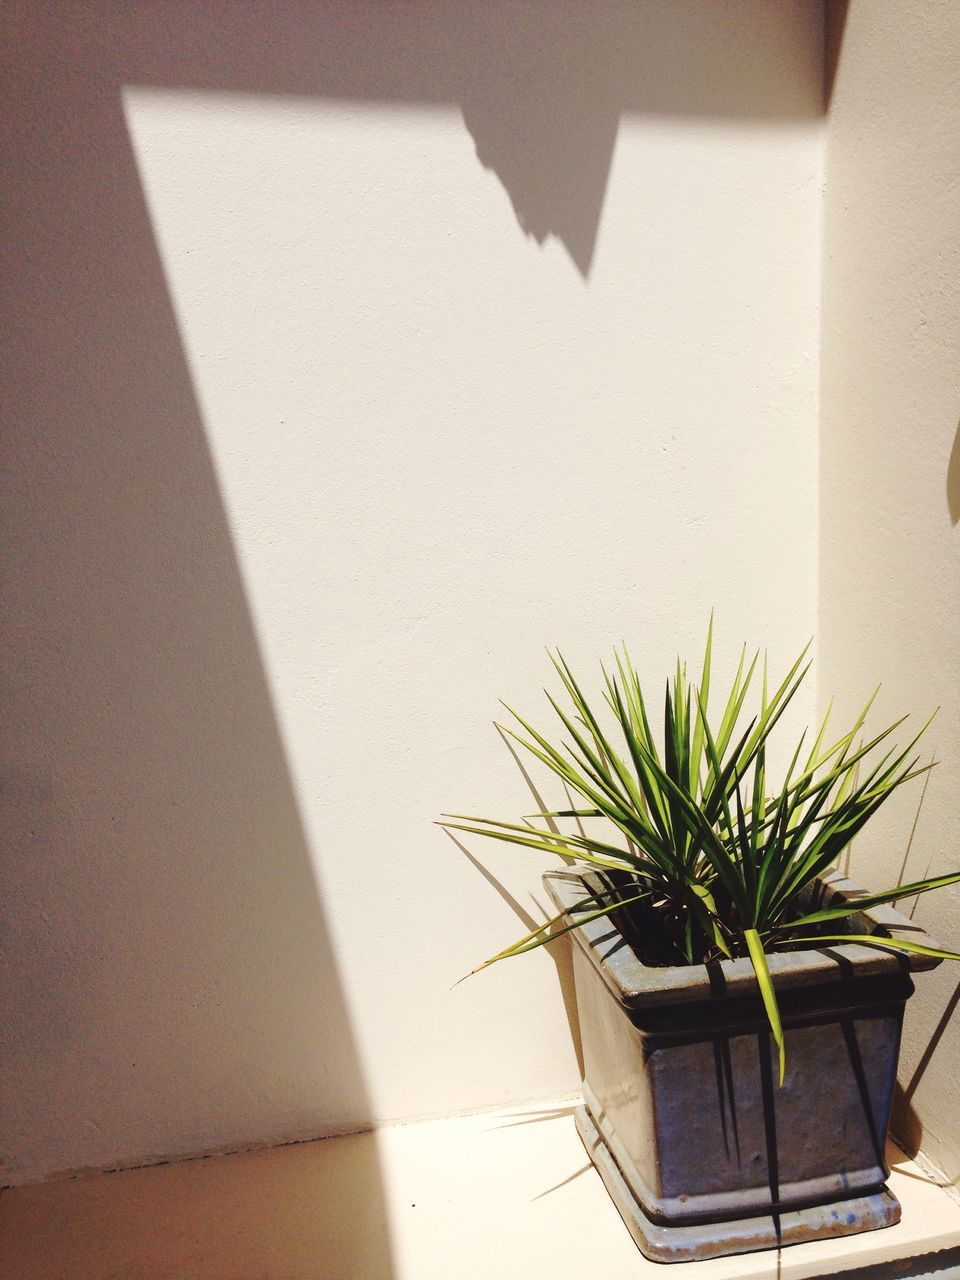 shadow, sunlight, potted plant, architecture, built structure, growth, no people, indoors, plant, day, building exterior, nature, whitewashed, close-up